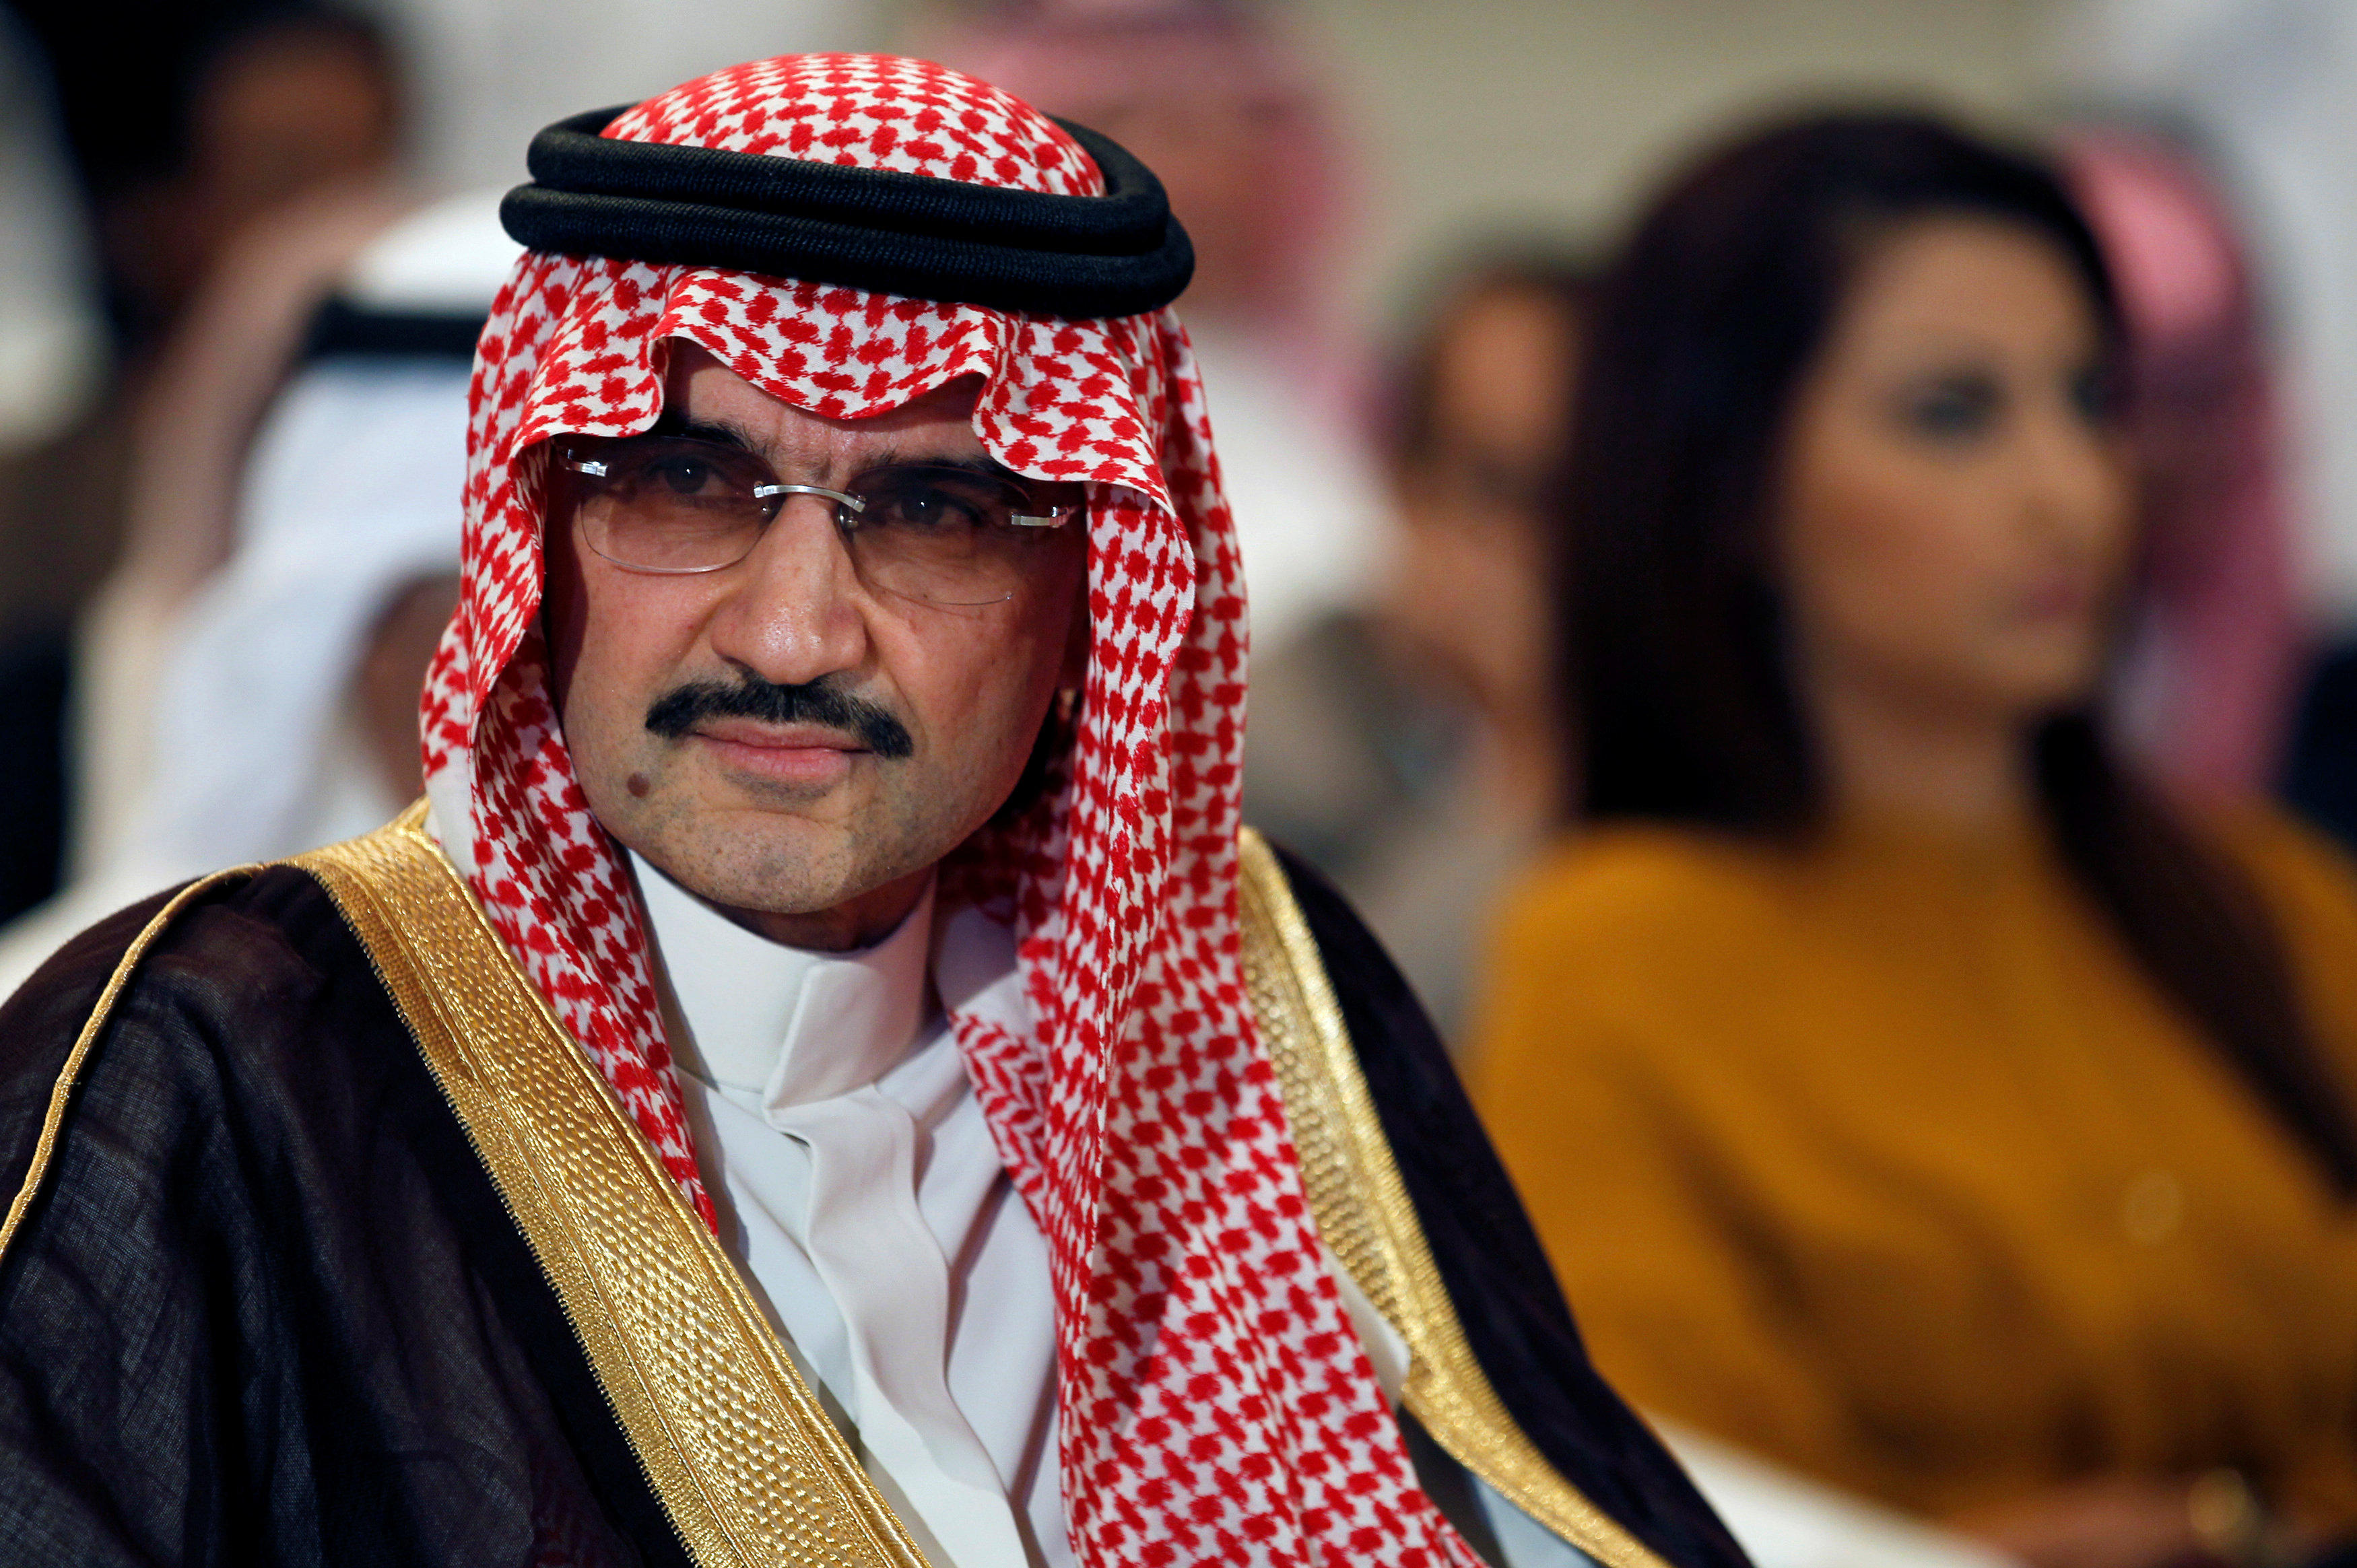 Dozens of arrests shock Saudi Arabia, cement Crown Prince's power